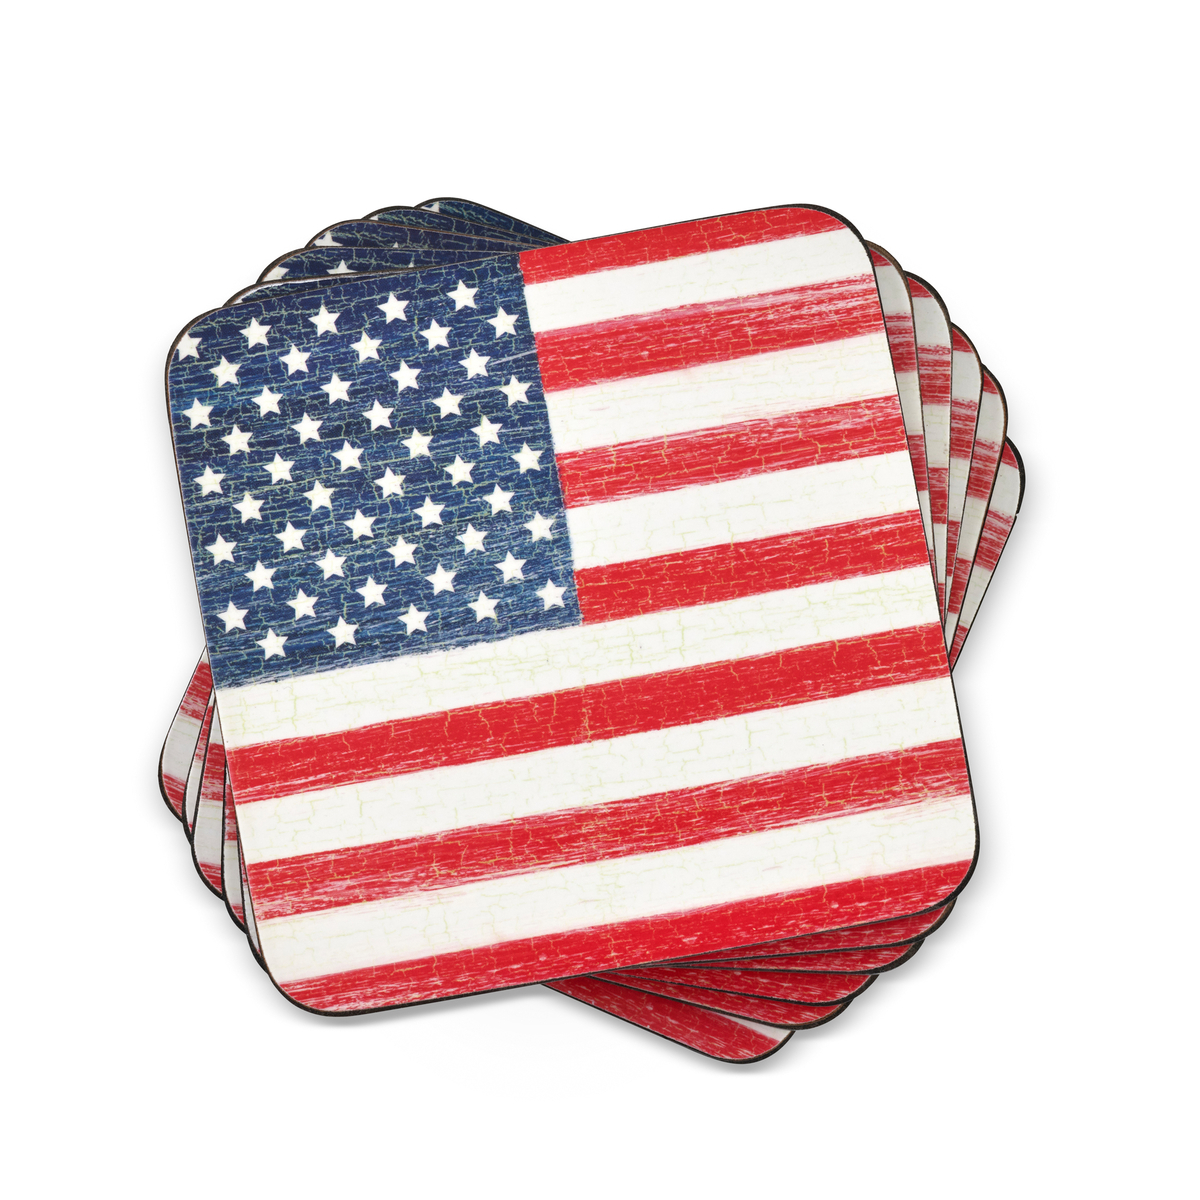 Pimpernel American Flag Coasters Set of 6 image number 0